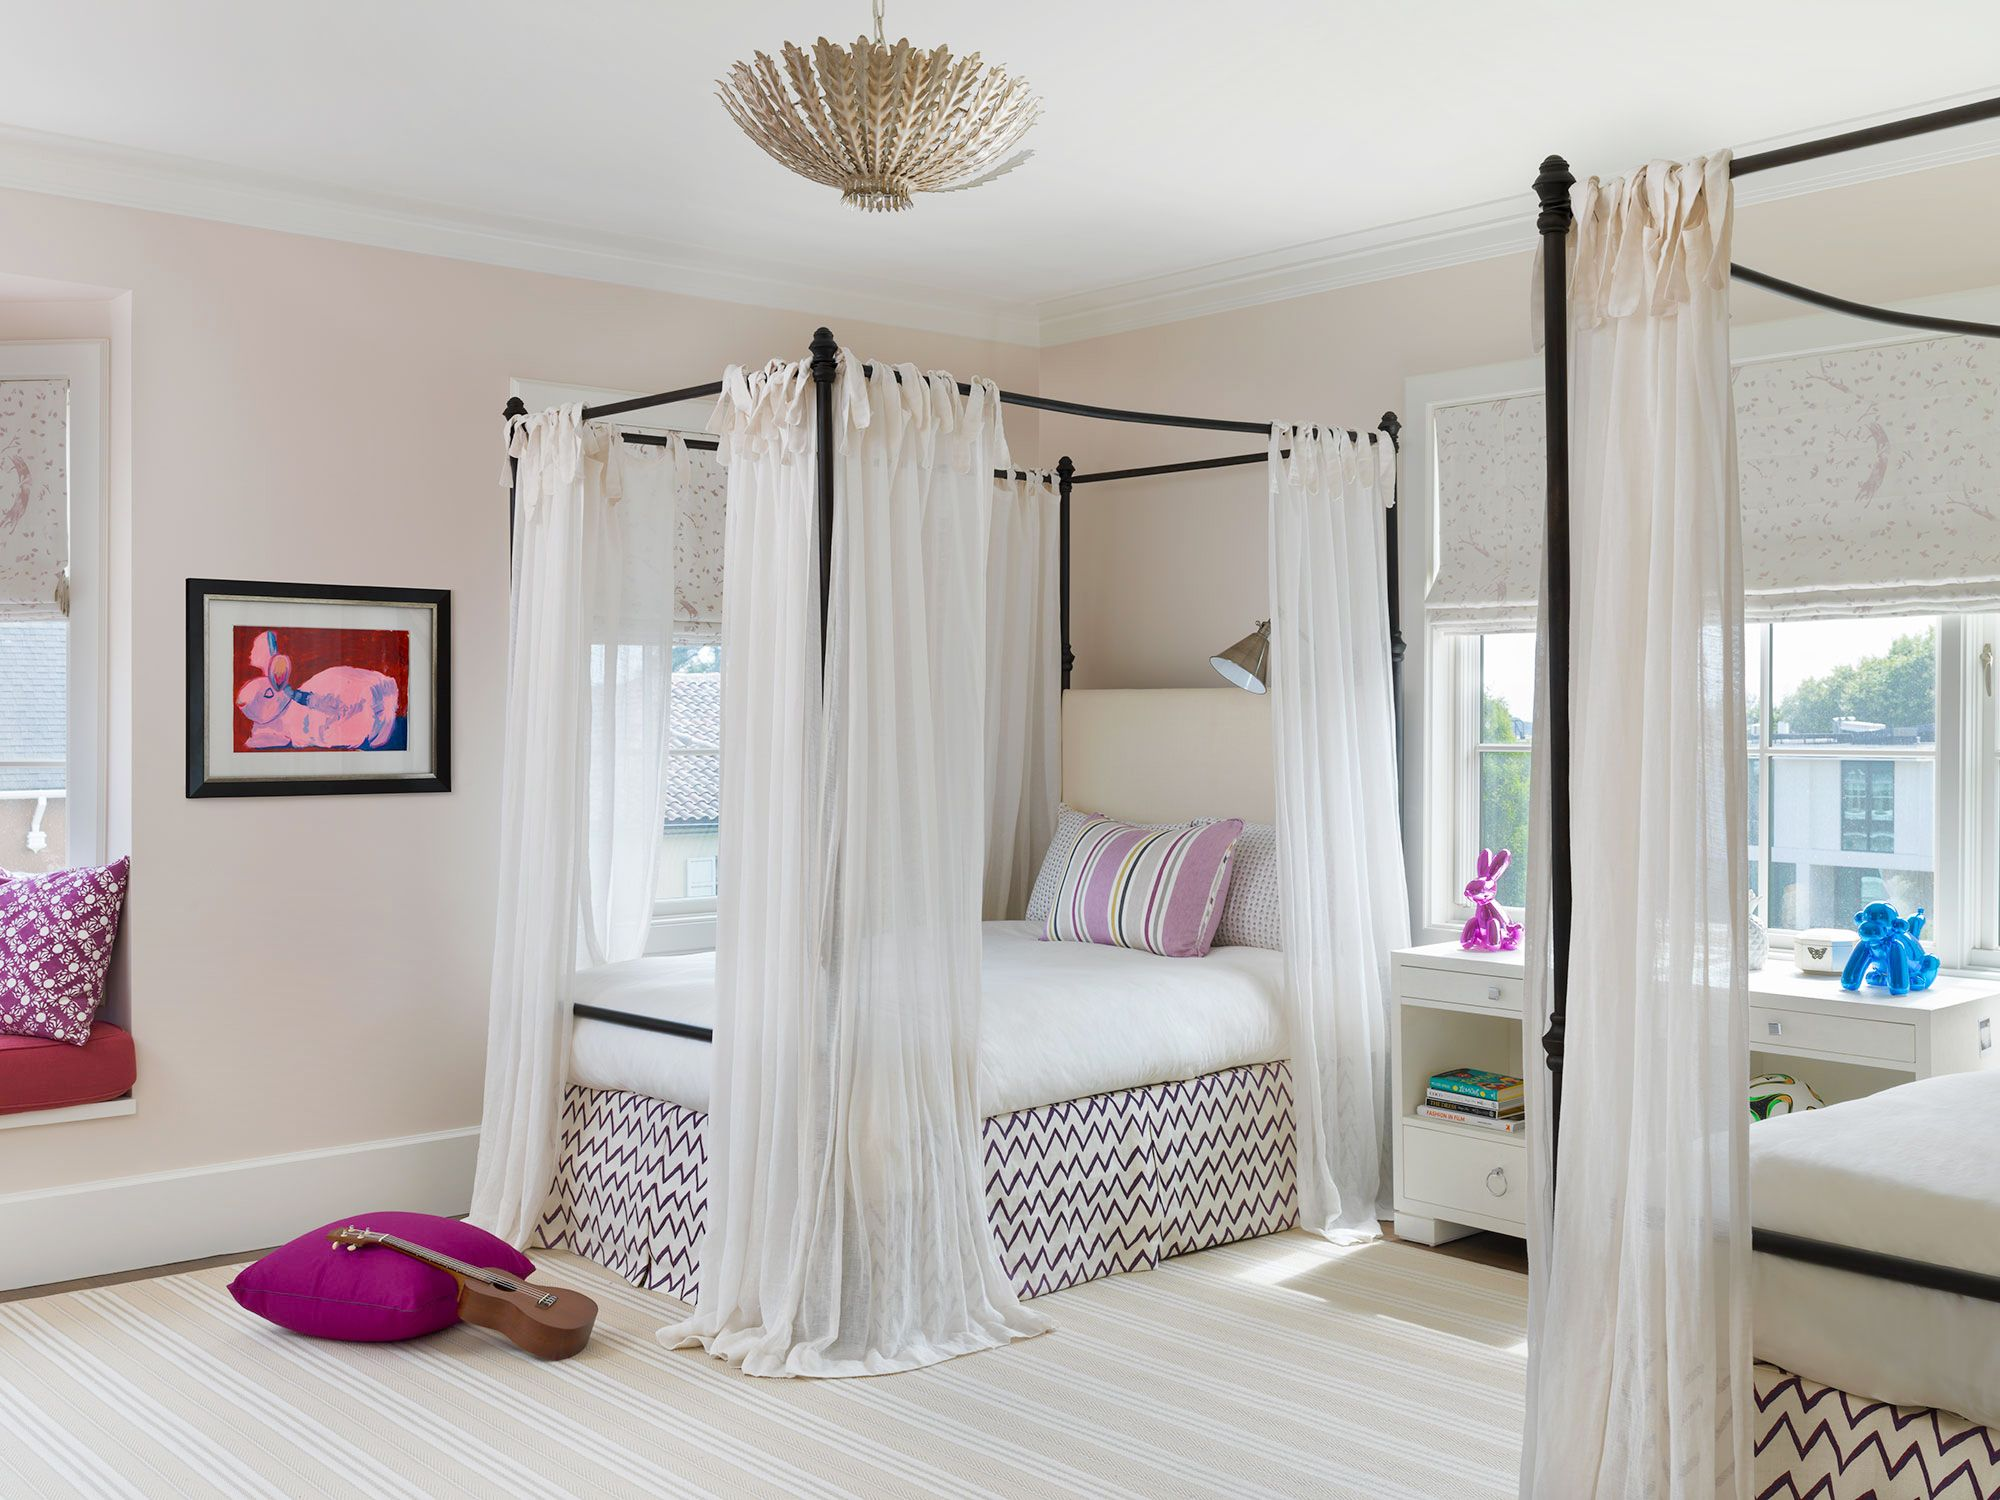 11 Best Teen Bedroom Ideas - Cool Teenage Room Decor for Girls and